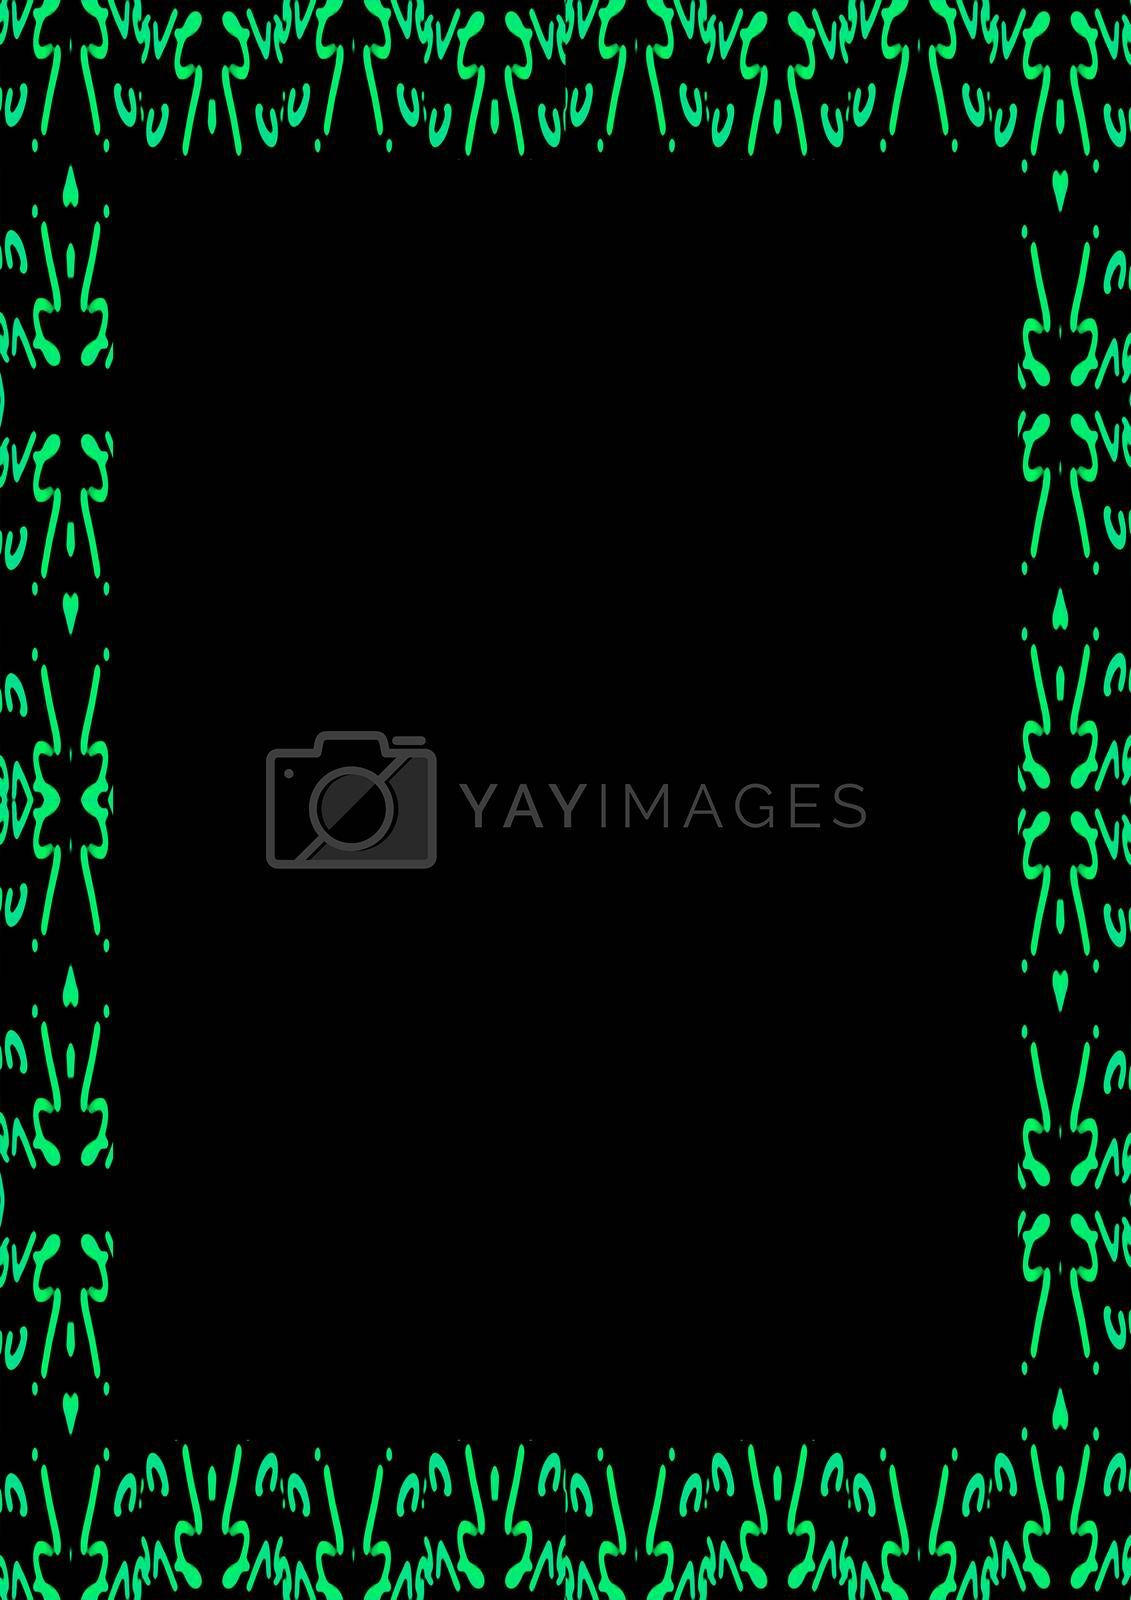 Royalty free image of Black Frame with Decorated Patterned Borders by DanFLCreative